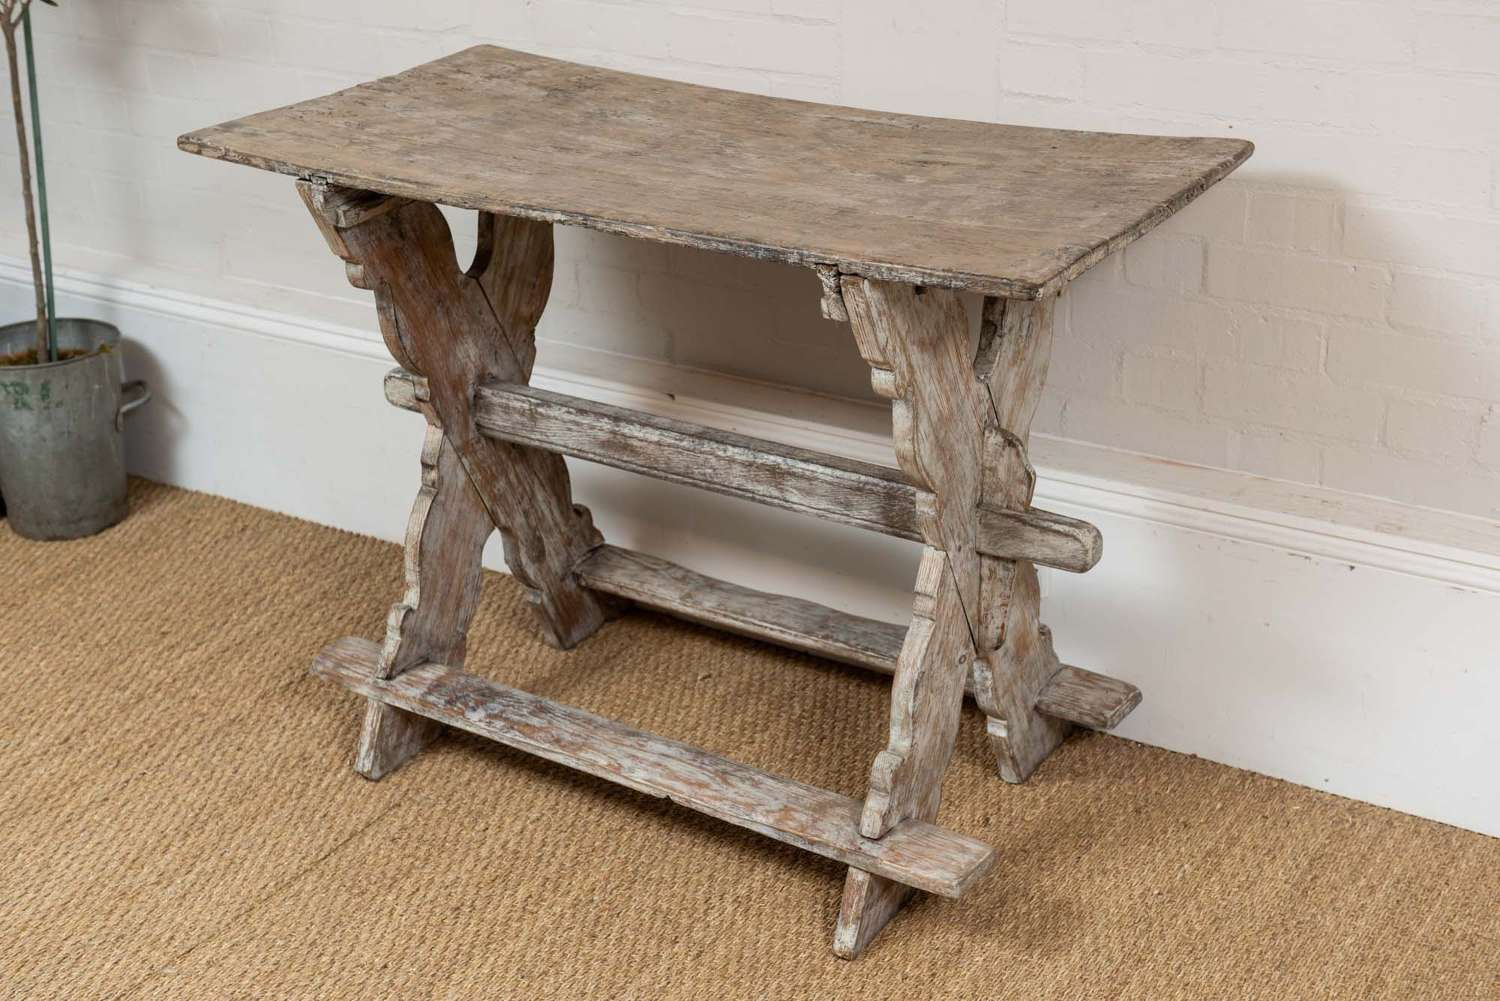 Late 18thc rustic painted swedish table